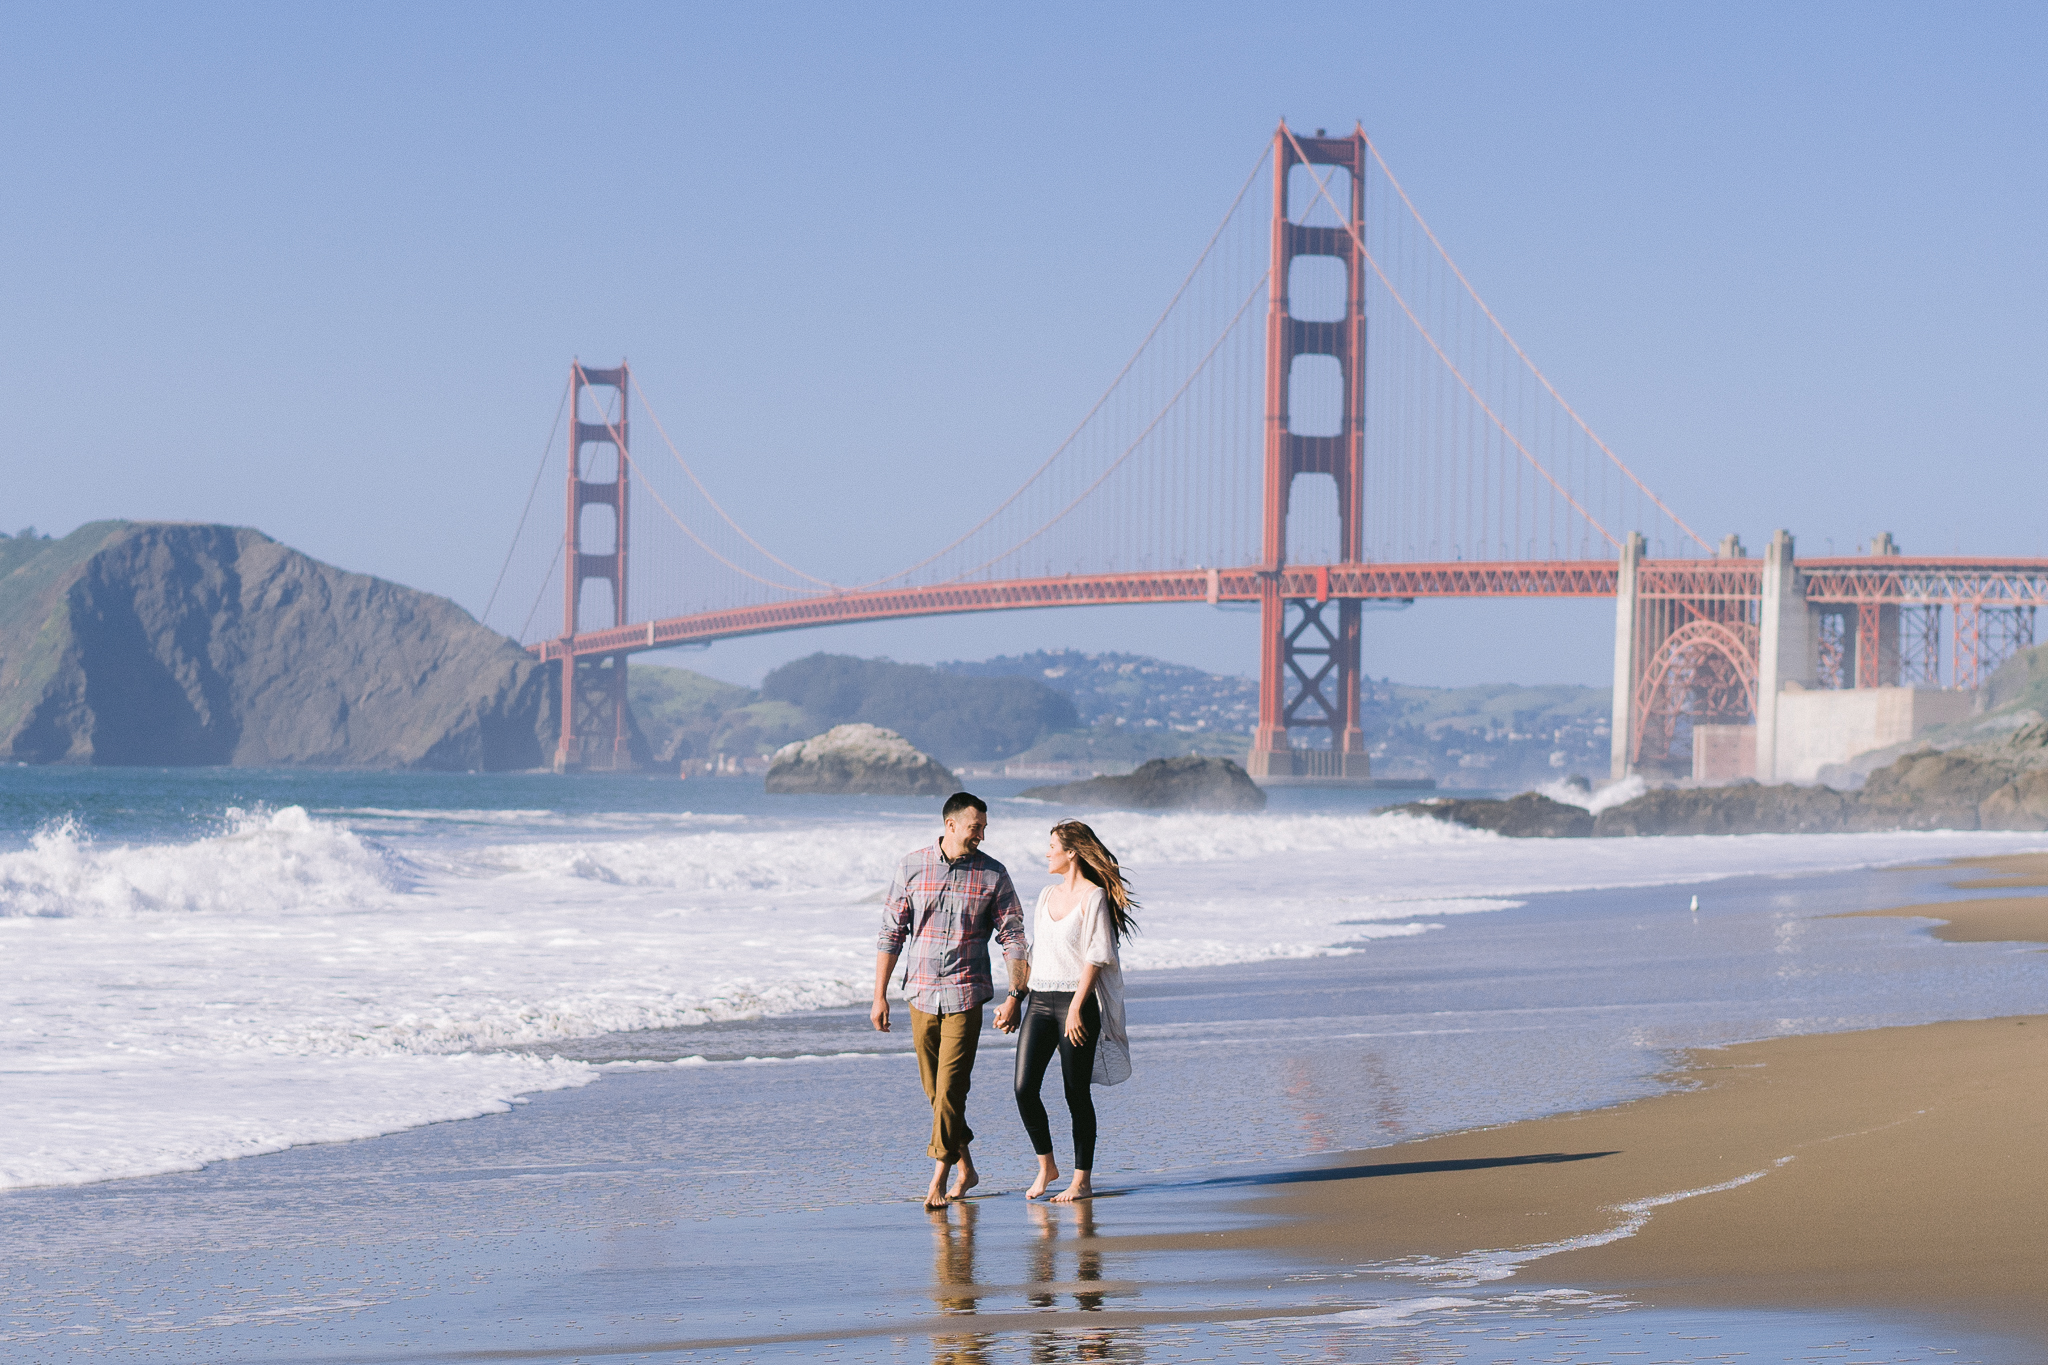 Engaged Couple Stephanie and Danny strolling along Baker Beach hand in hand in front of the Golden Gate Bridge during an Engagement Photo Shoot in San Francisco, CA.